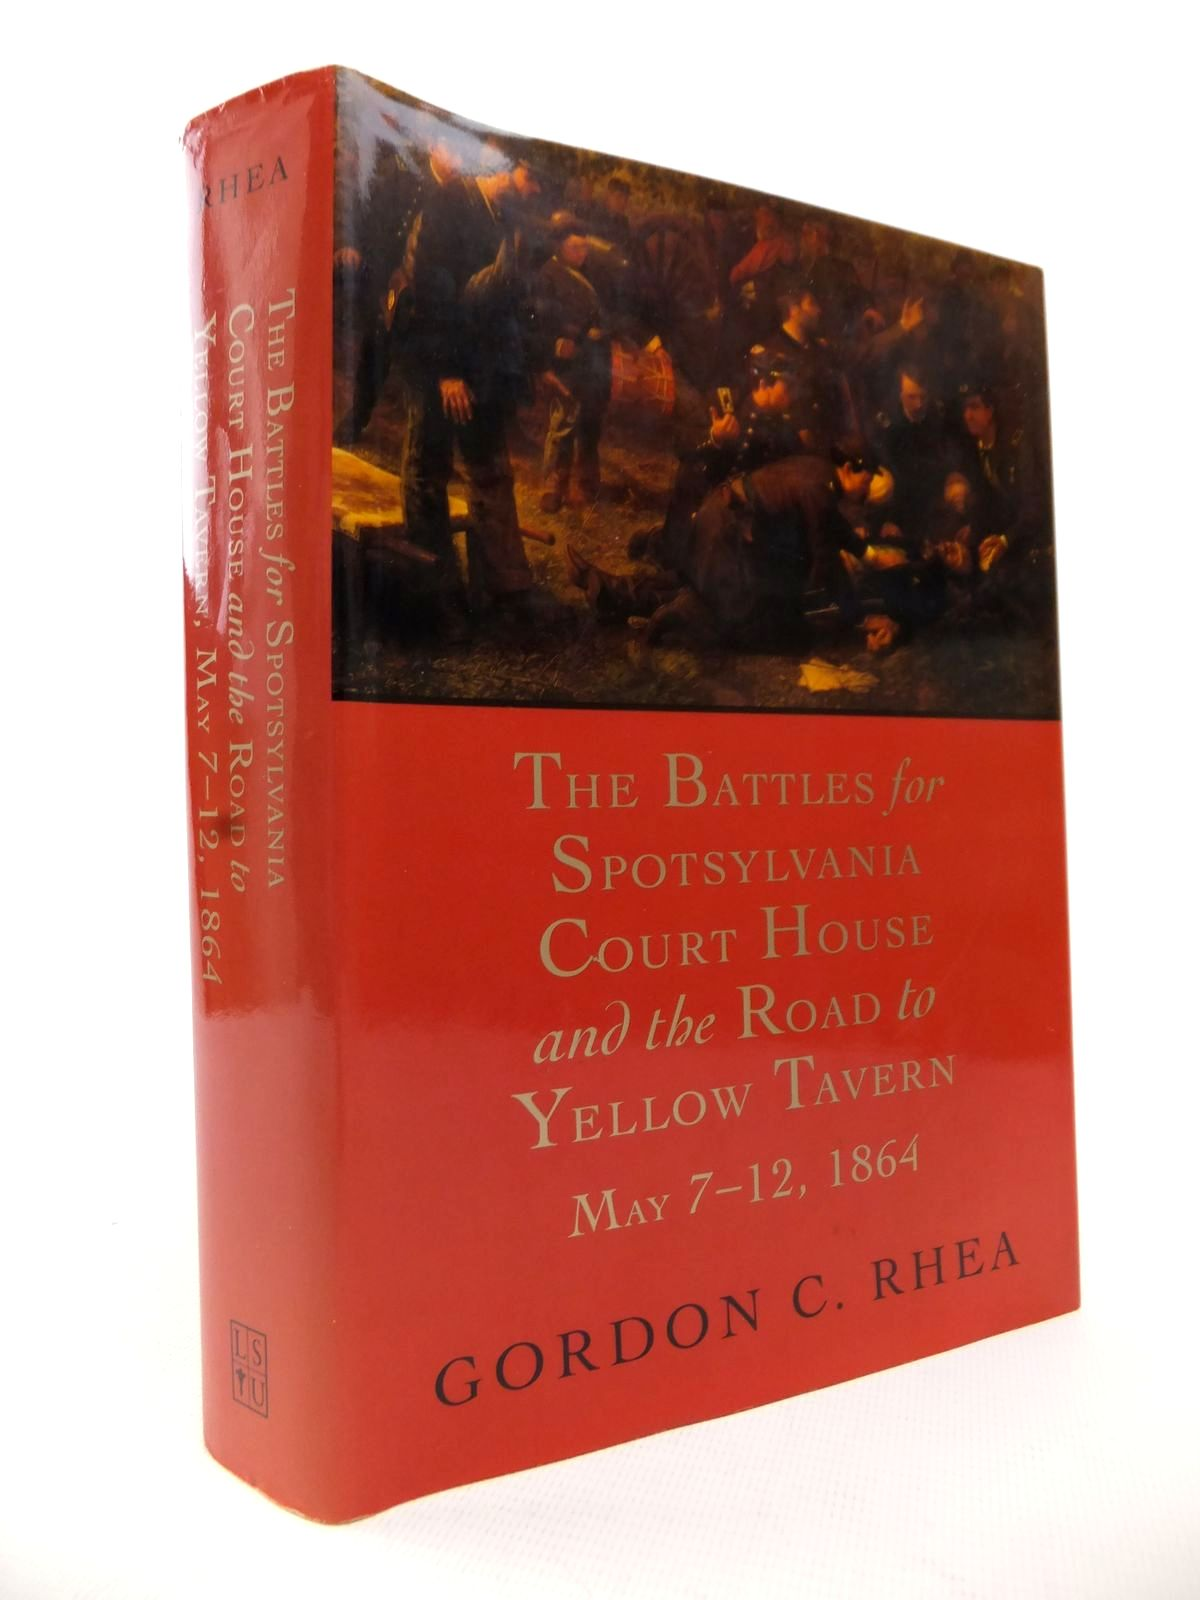 Photo of THE BATTLES FOR SPOTSYLVANIA COURT HOUSE AND THE ROAD TO YELLOW TAVERN MAY 7-12 1864 written by Rhea, Gordon C. published by Louisiana State University Press (STOCK CODE: 1813632)  for sale by Stella & Rose's Books